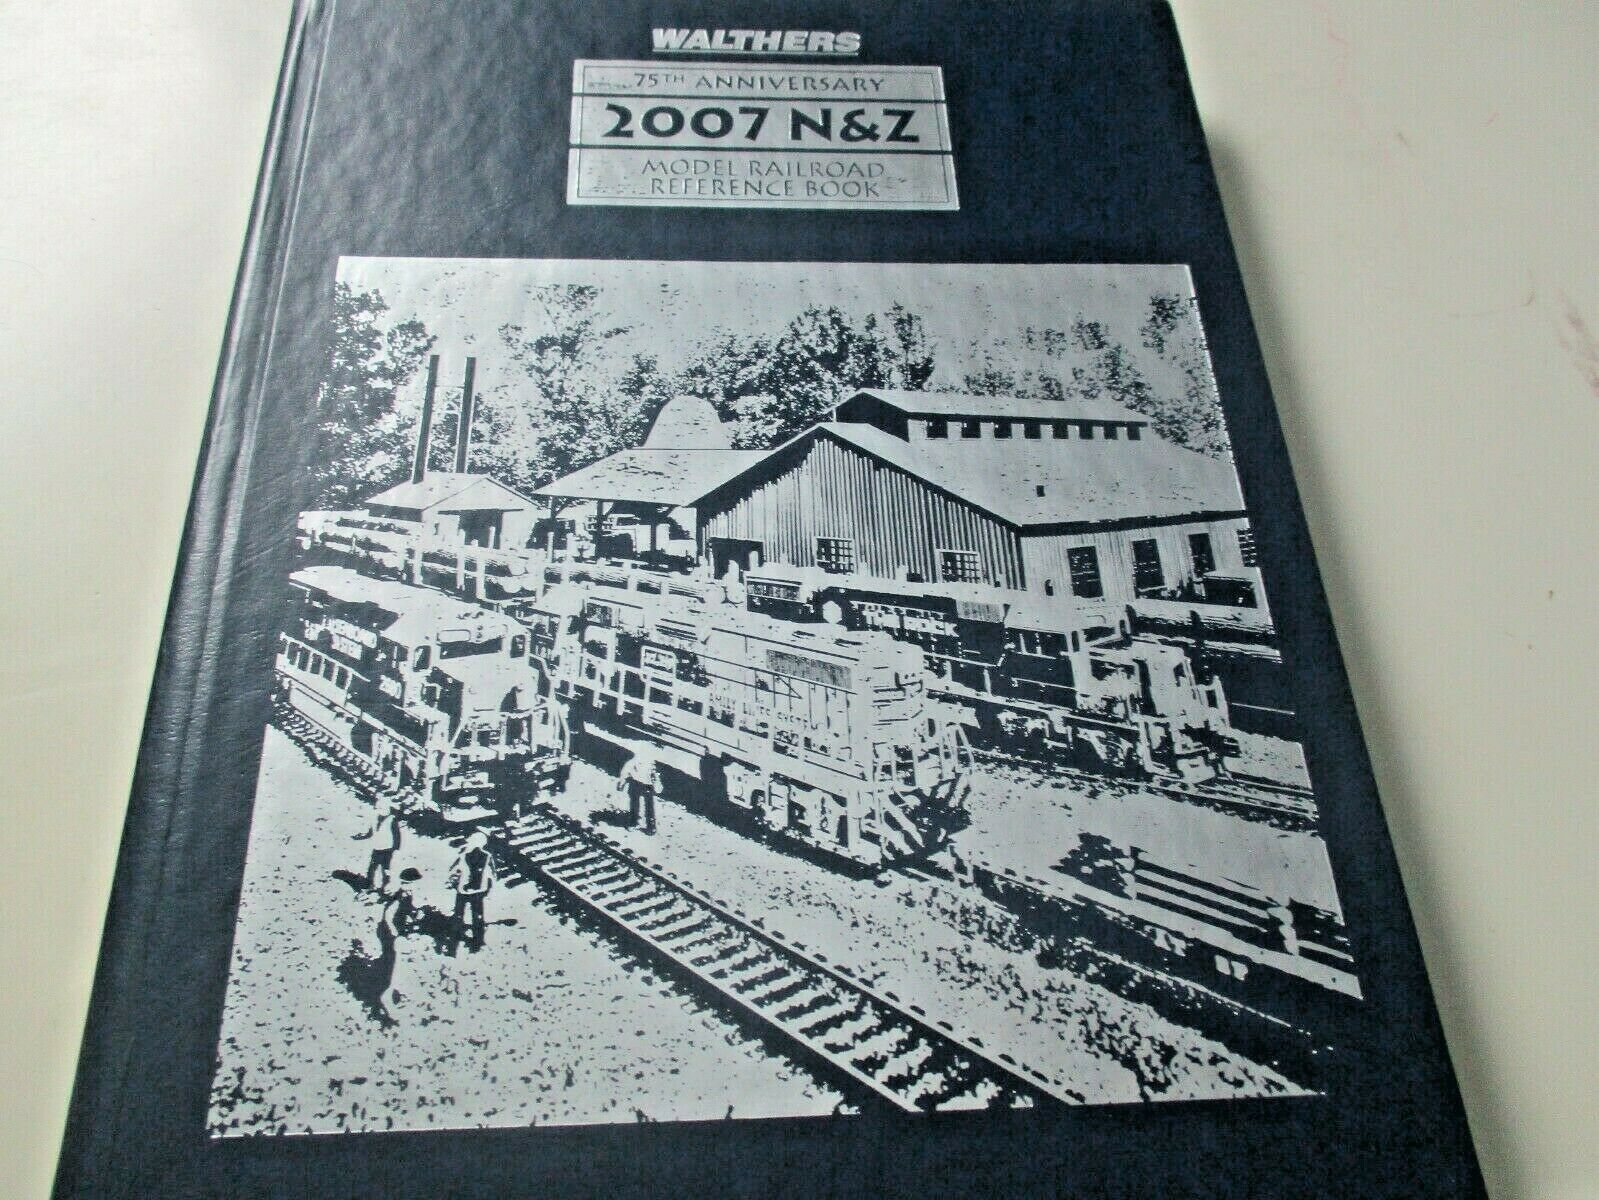 Walthers # 913-2470 2007 75th Anniversary Hard Cover # 75 of 537 Catalog N & Z